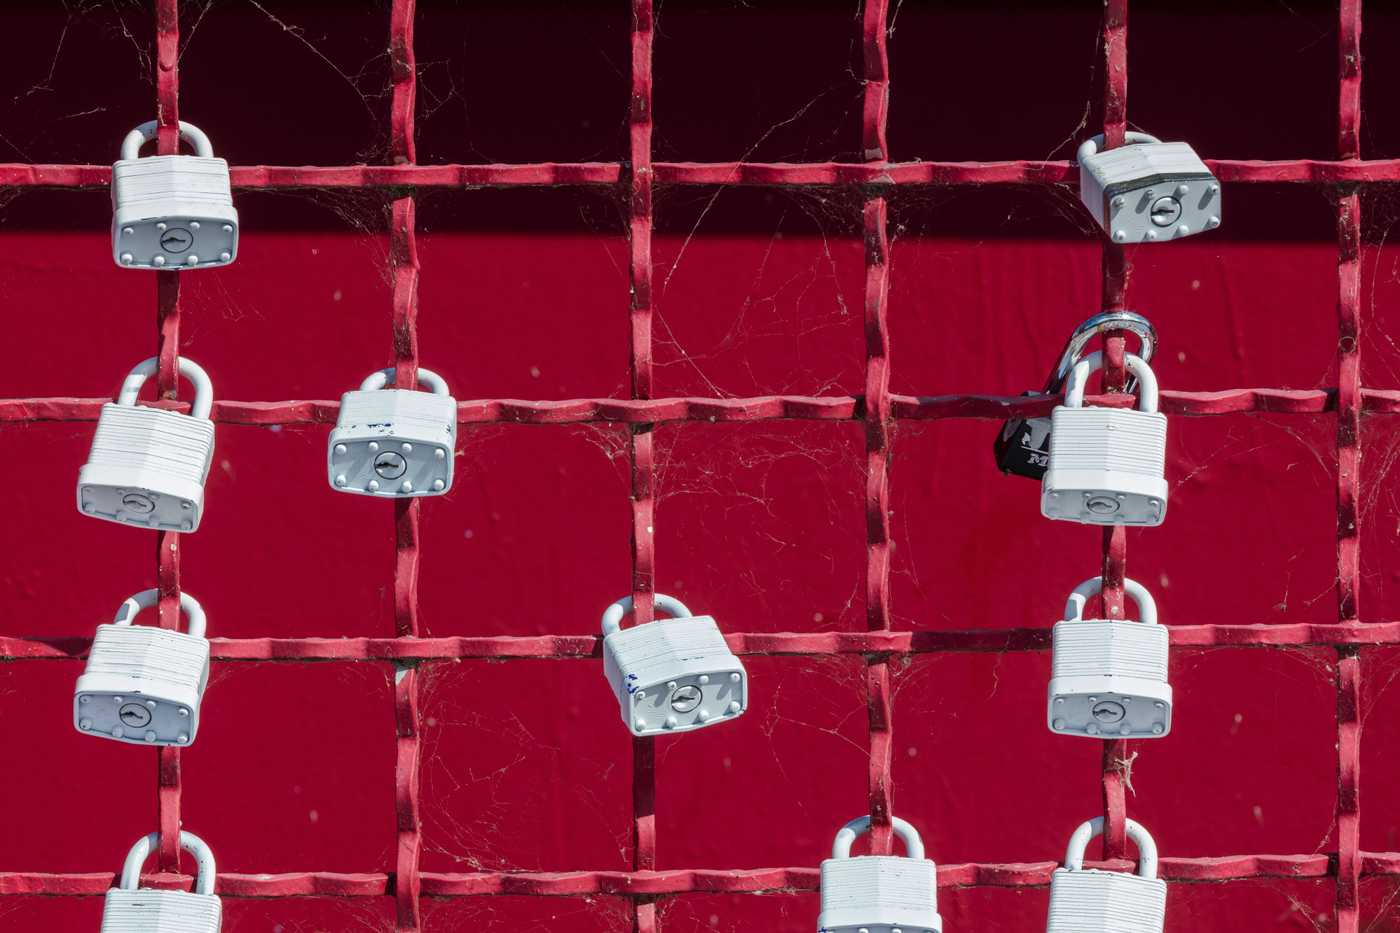 multiple locks chained to a fence